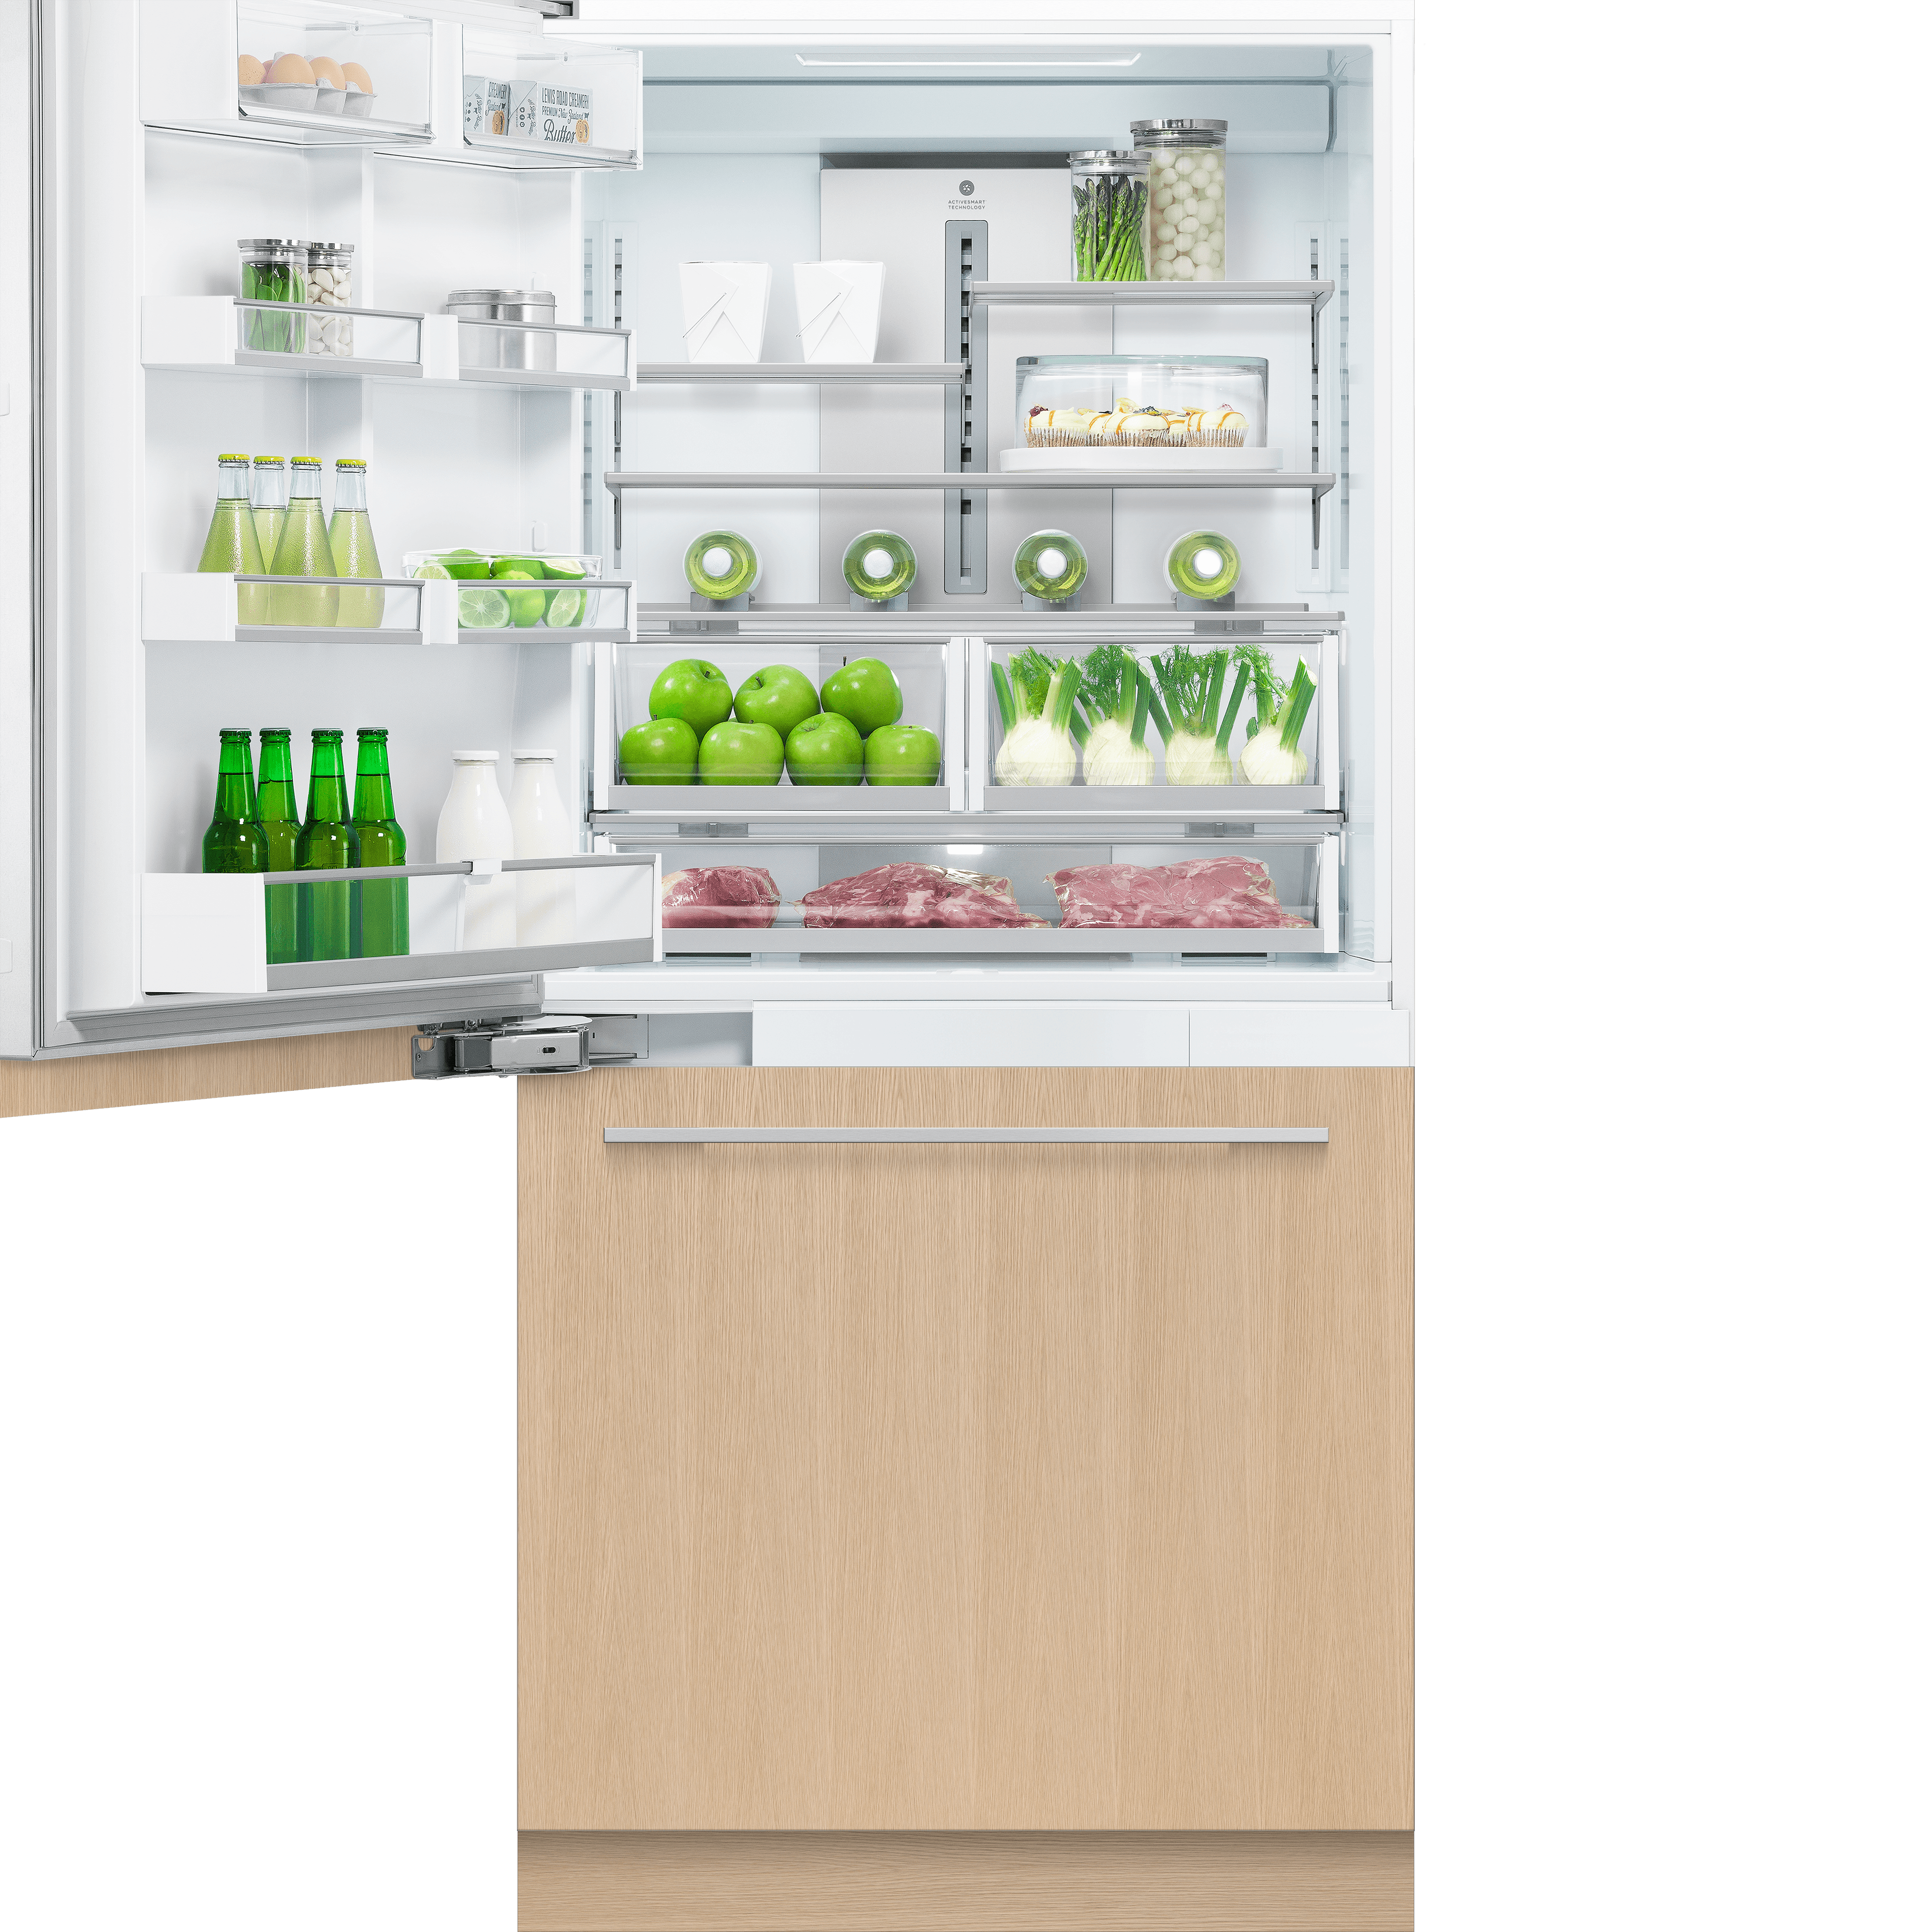 Model: RS36W80LJ1_N   Fisher and Paykel Integrated Refrigerator 16.8cu ft, Ice